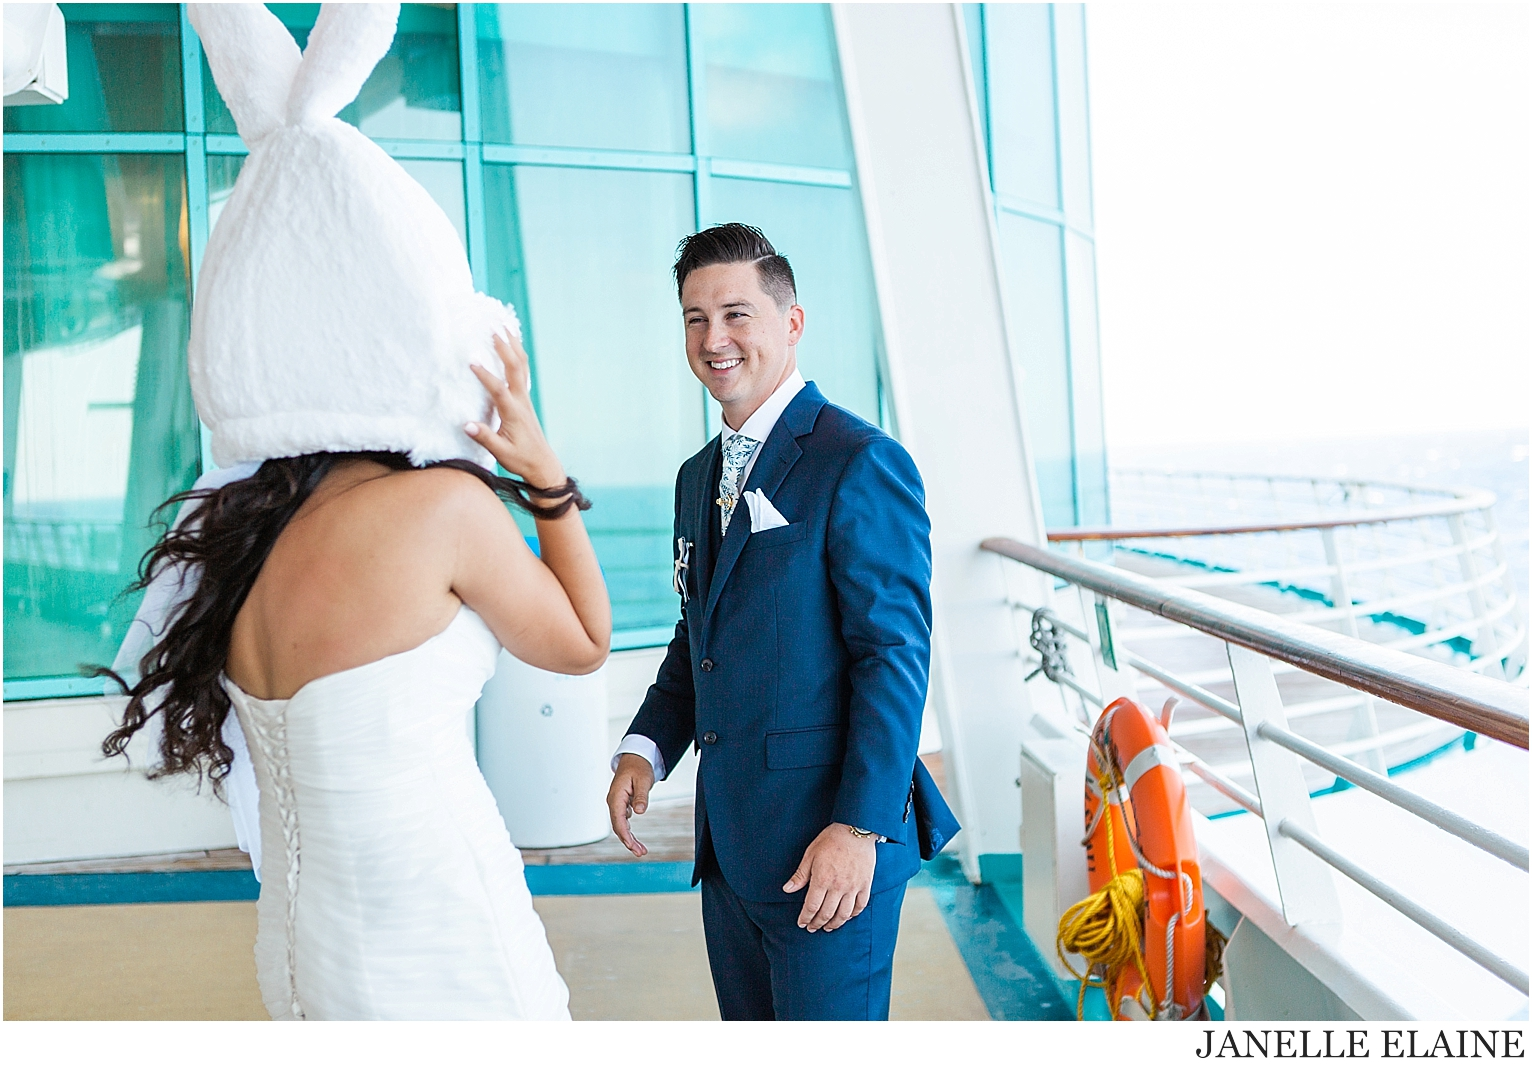 white wedding-royal caribbean-janelle elaine photography-148.jpg